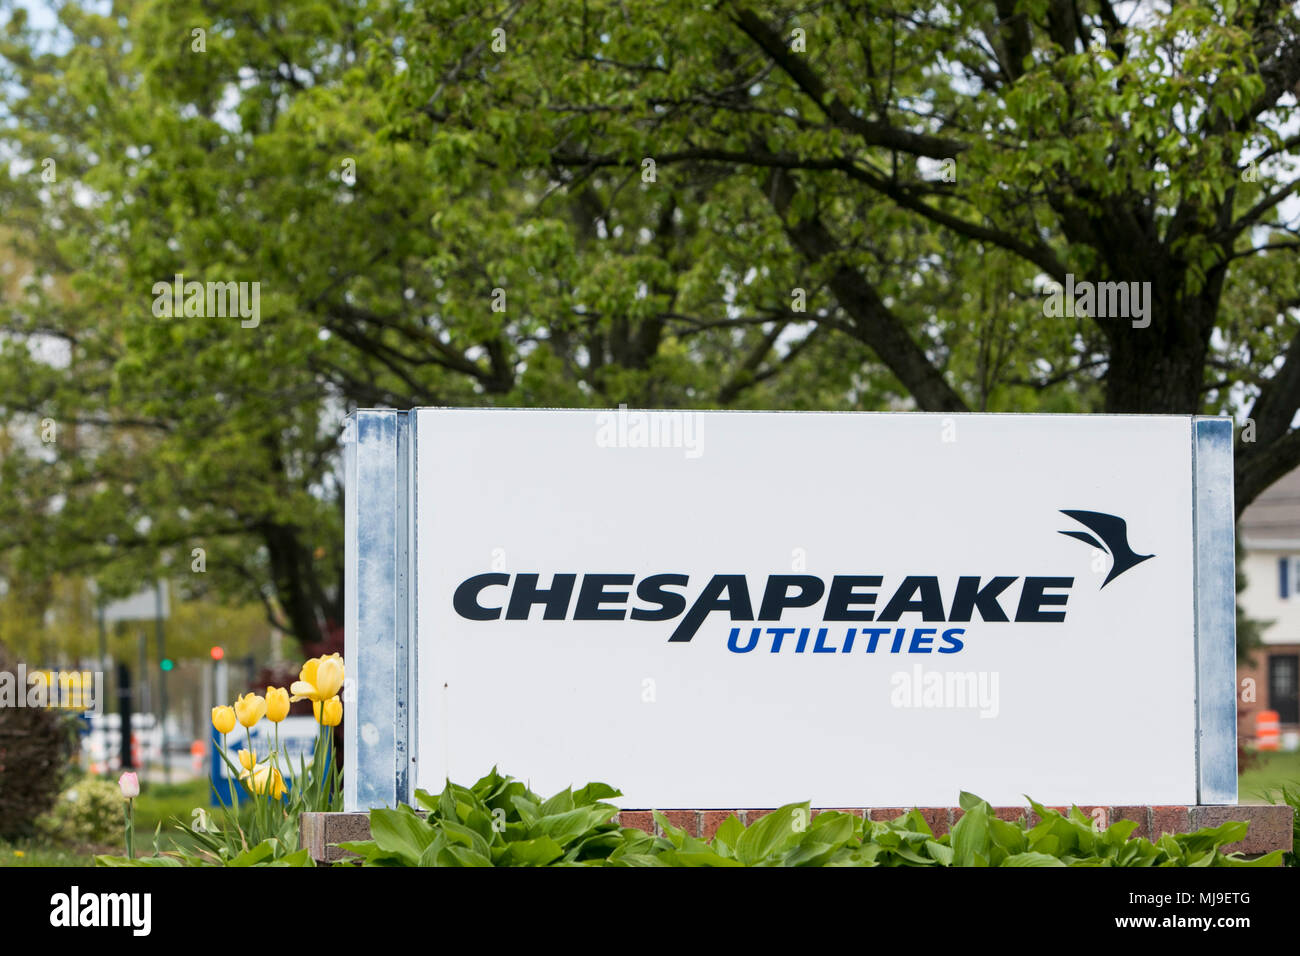 A logo sign outside of a facility occupied by the Chesapeake Utilities Corporation in Dover, Delaware on April 29, 2018. - Stock Image